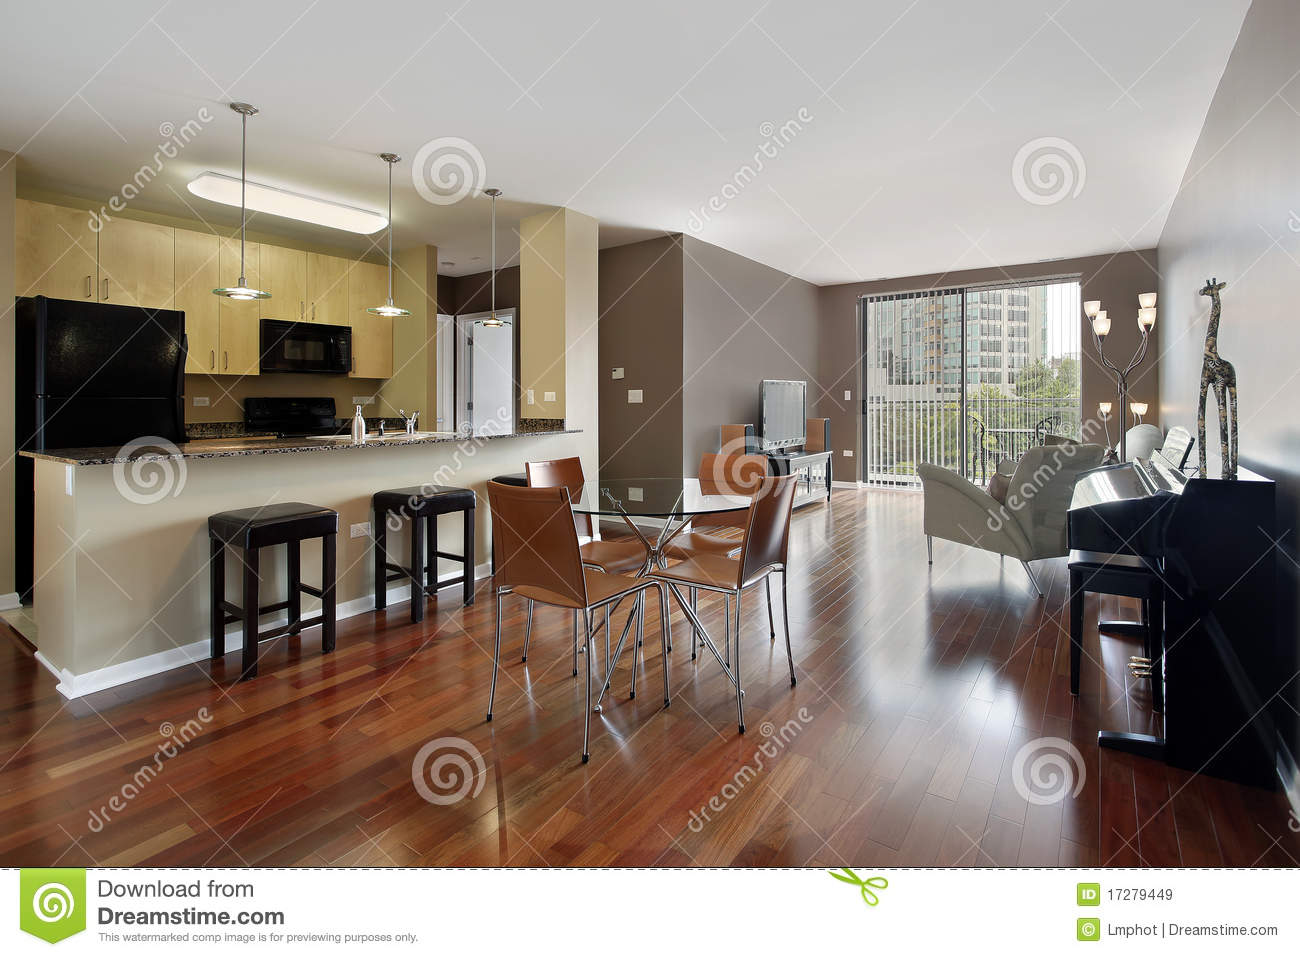 kitchen carpet sets kohler pull out faucet repair condo with open floor plan royalty free stock images ...